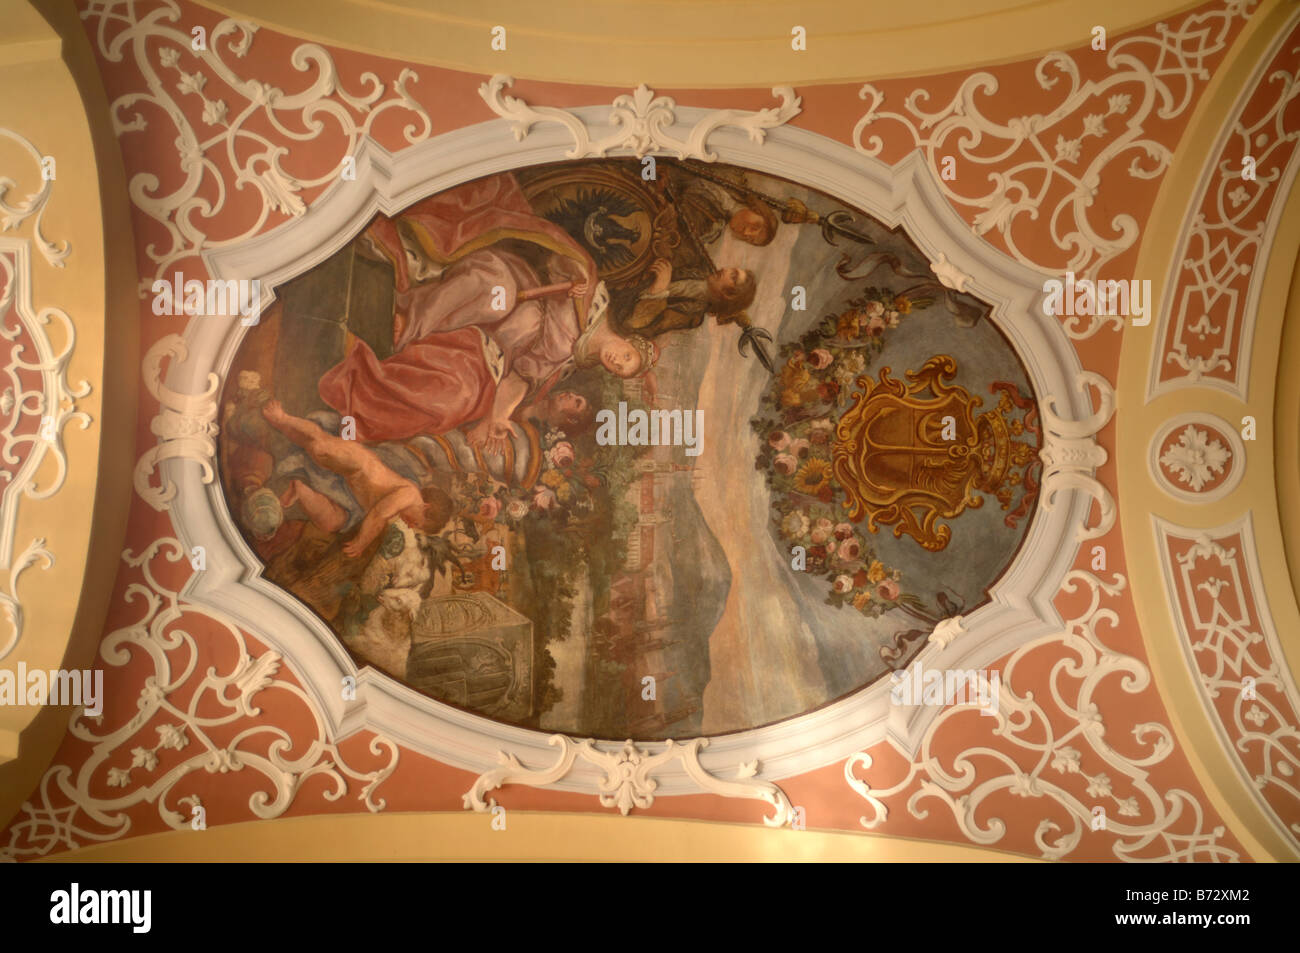 Interior ceiling of the University in Wroclaw originally Breslau - Stock Image